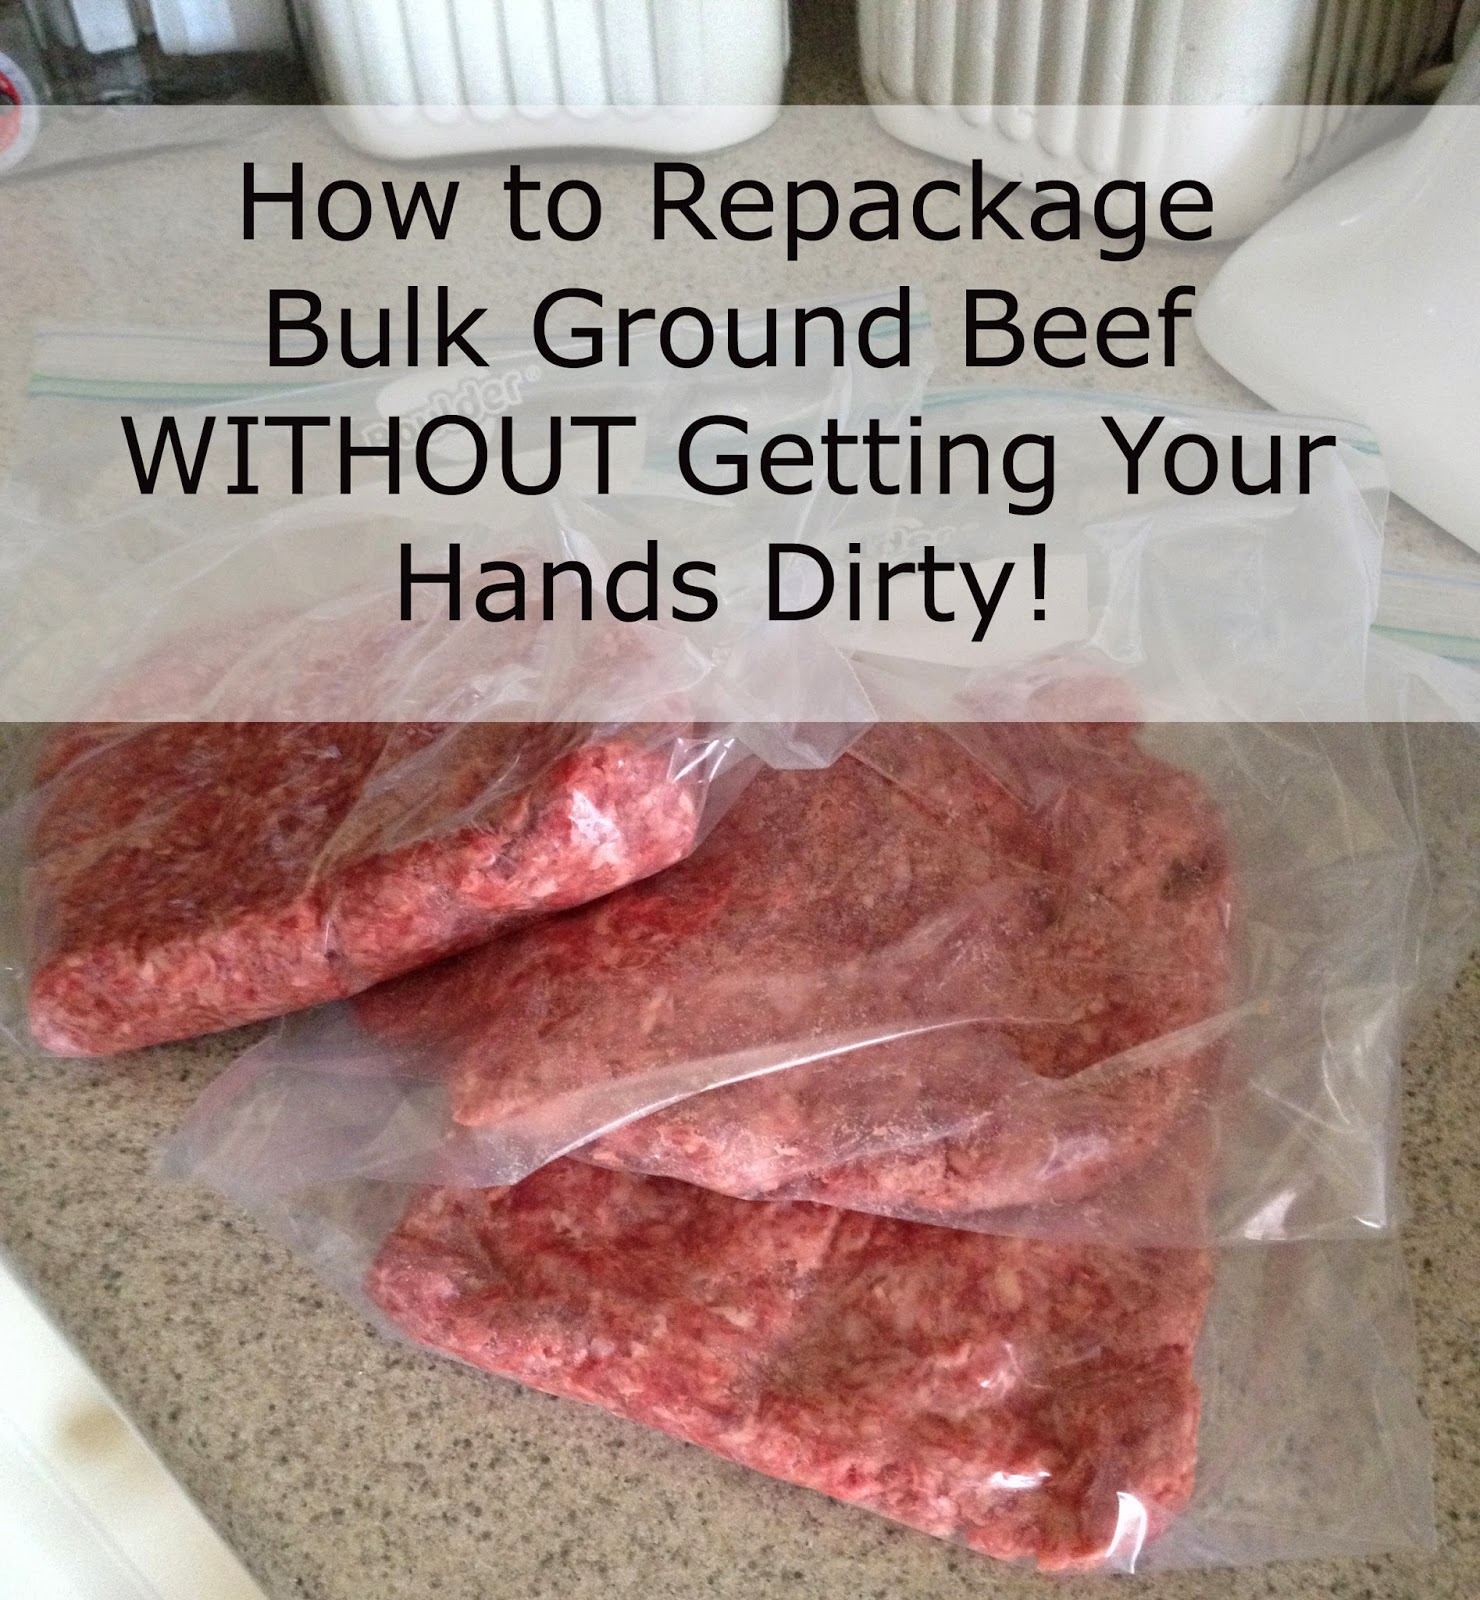 how to repackage bulk ground beef without getting your hands dirty